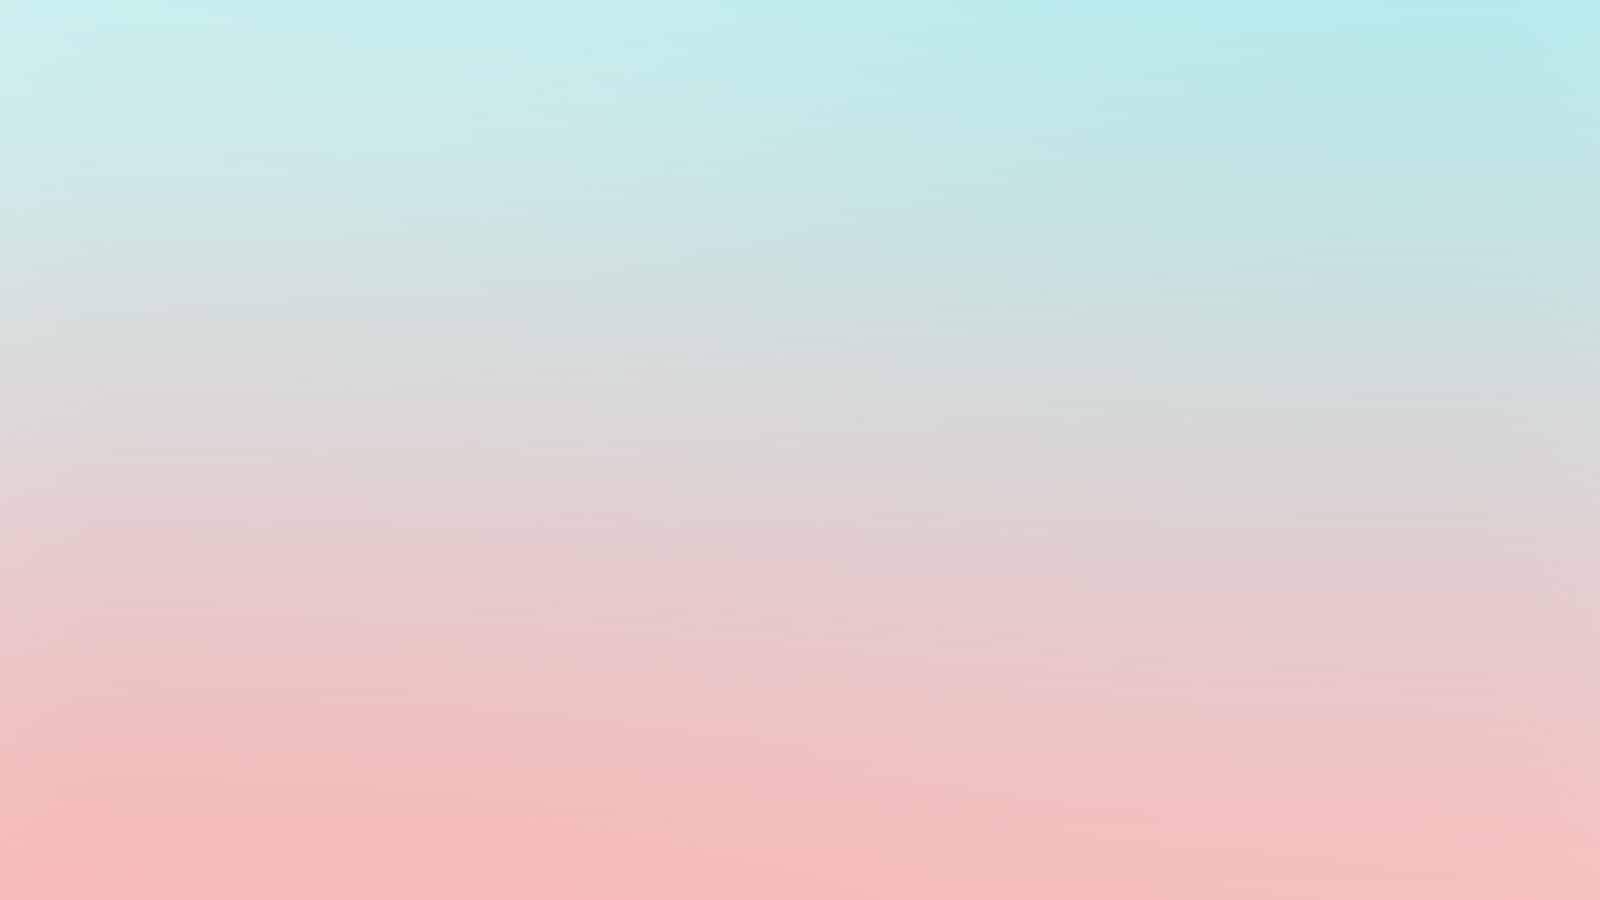 Christmas Wallpaper Hd Sm40 Blue Red Soft Pastel Blur Gradation Wallpaper